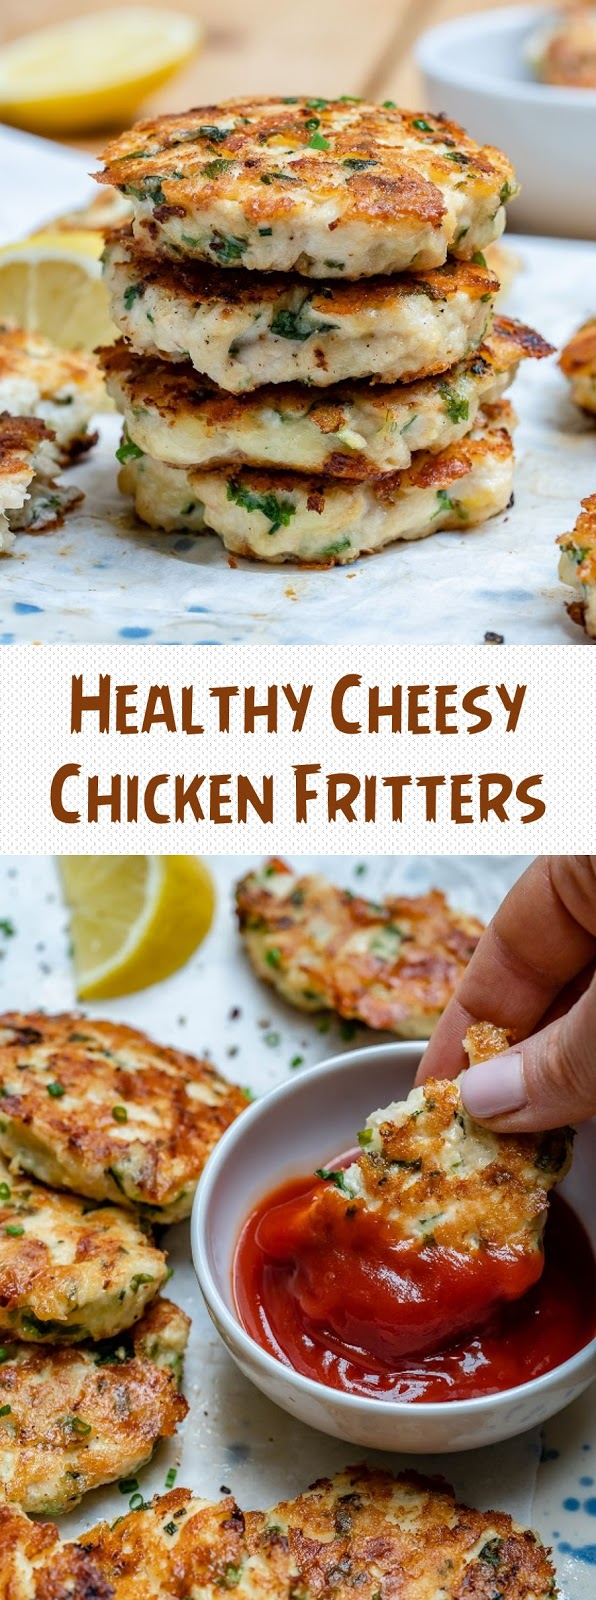 Healthy Cheesy Chicken Fritters